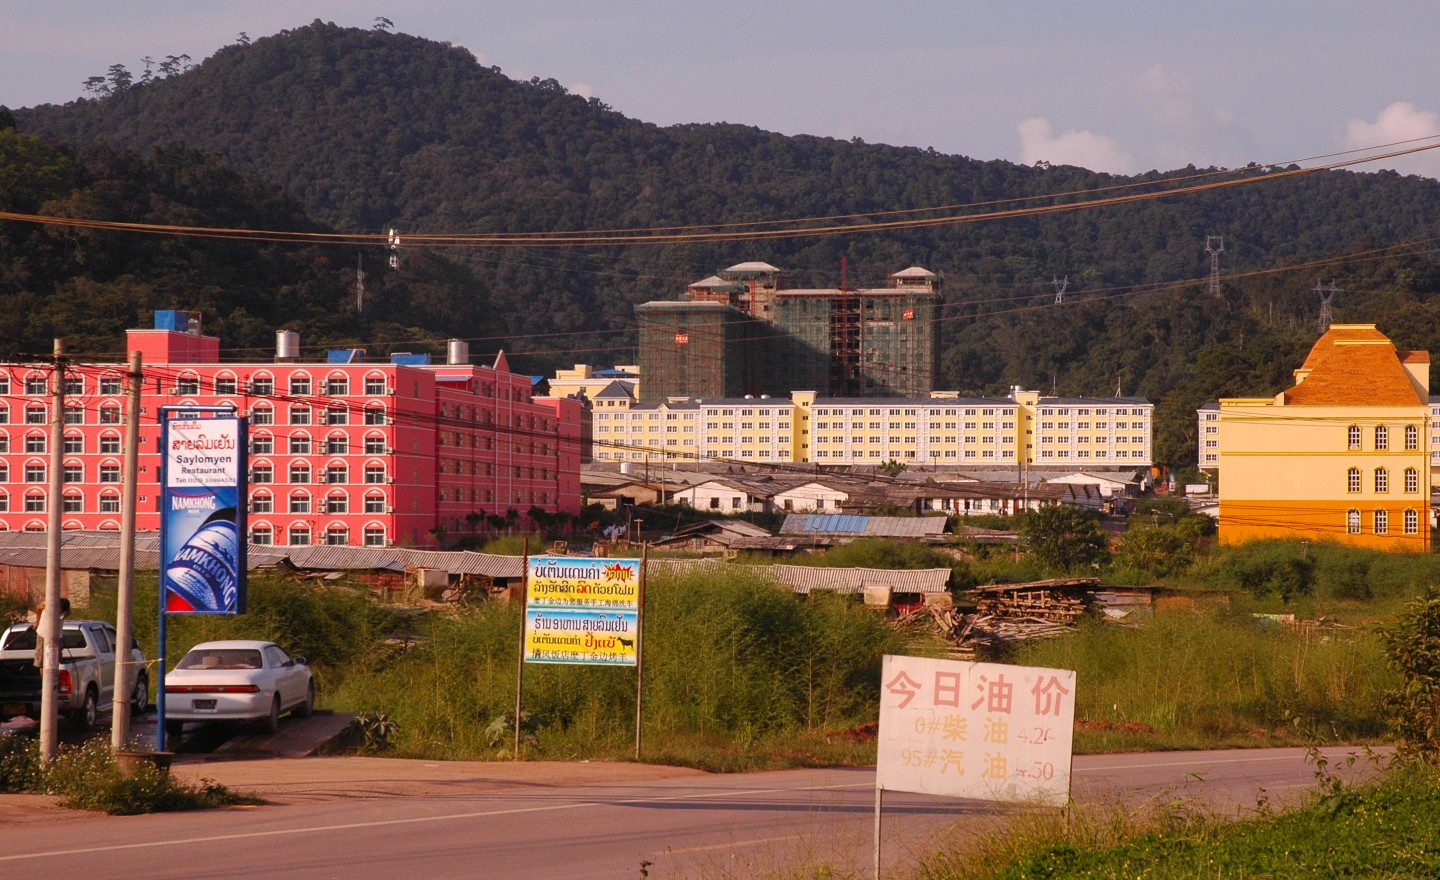 Beijing's influence is apparent in Boten, which connects China to Asean. In Boten, a Special Economic Zone has been leased from the Laotian government by Hong Kong-based Boten Golden Land. (SPH)